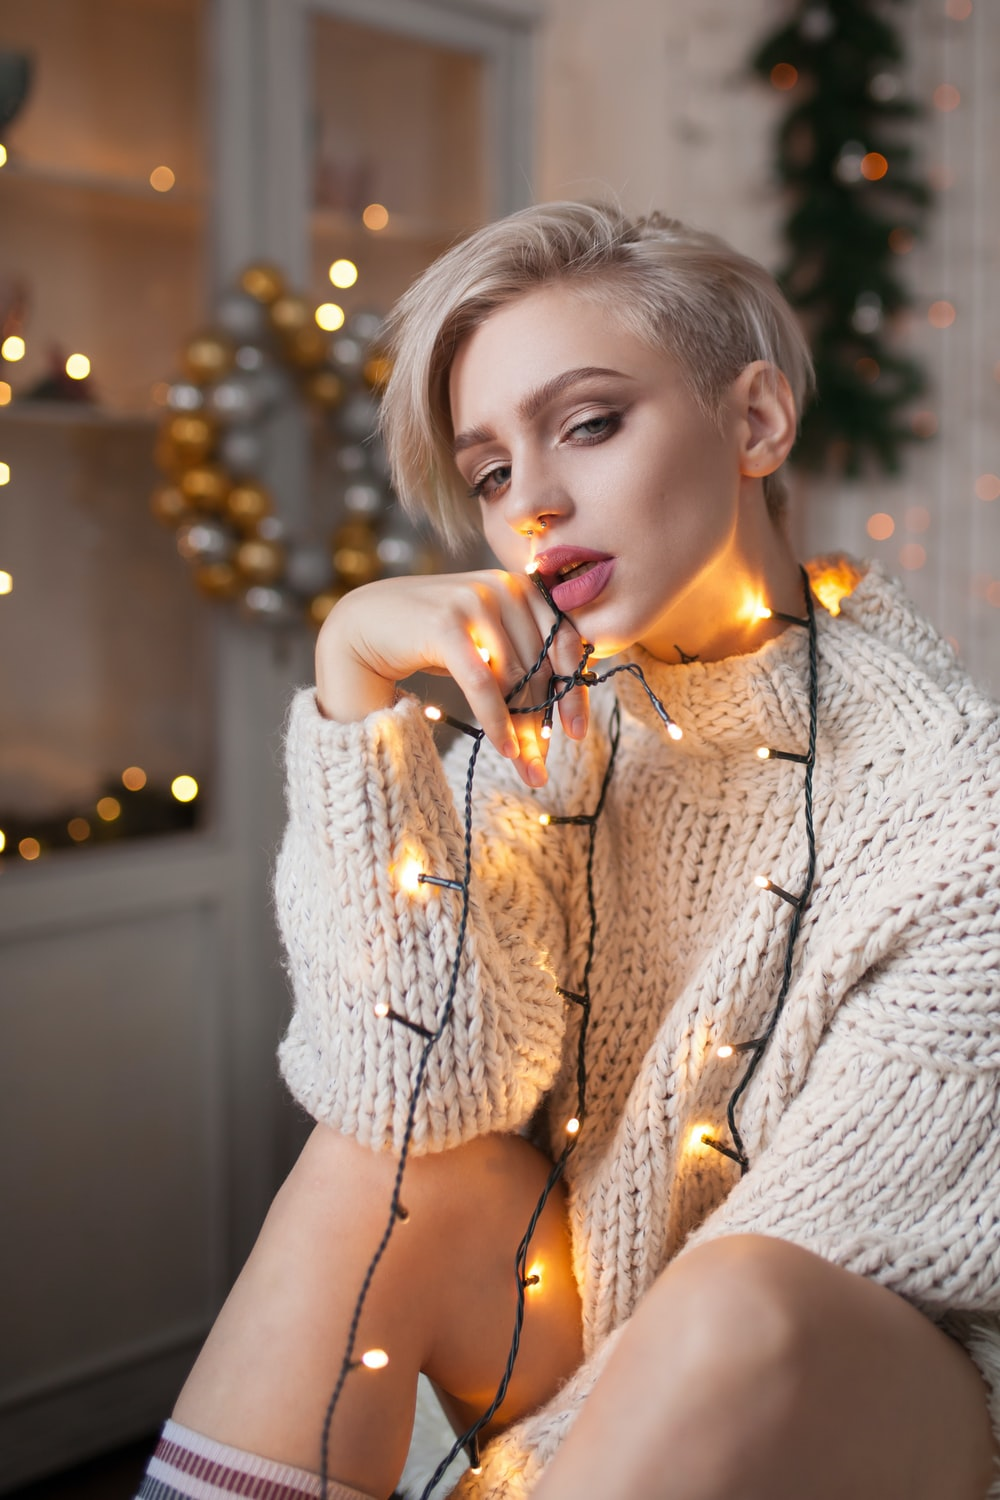 woman in beige sweater with orange string lights on her body